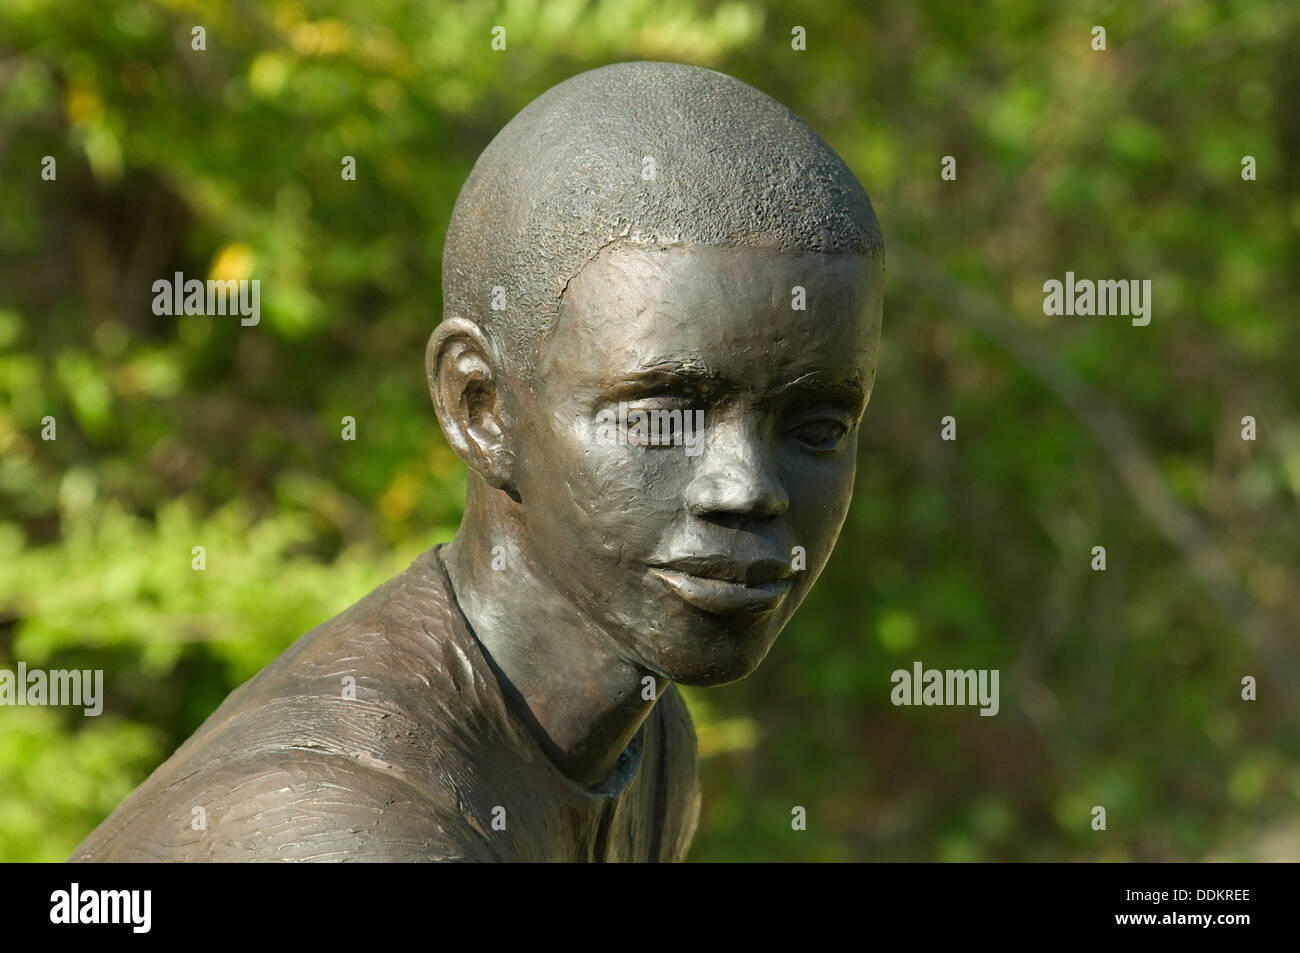 Statue of freed slave boy at Union Army's Contraband Camp in Corinth MS, 1862-1864. Digital photograph - Stock Image